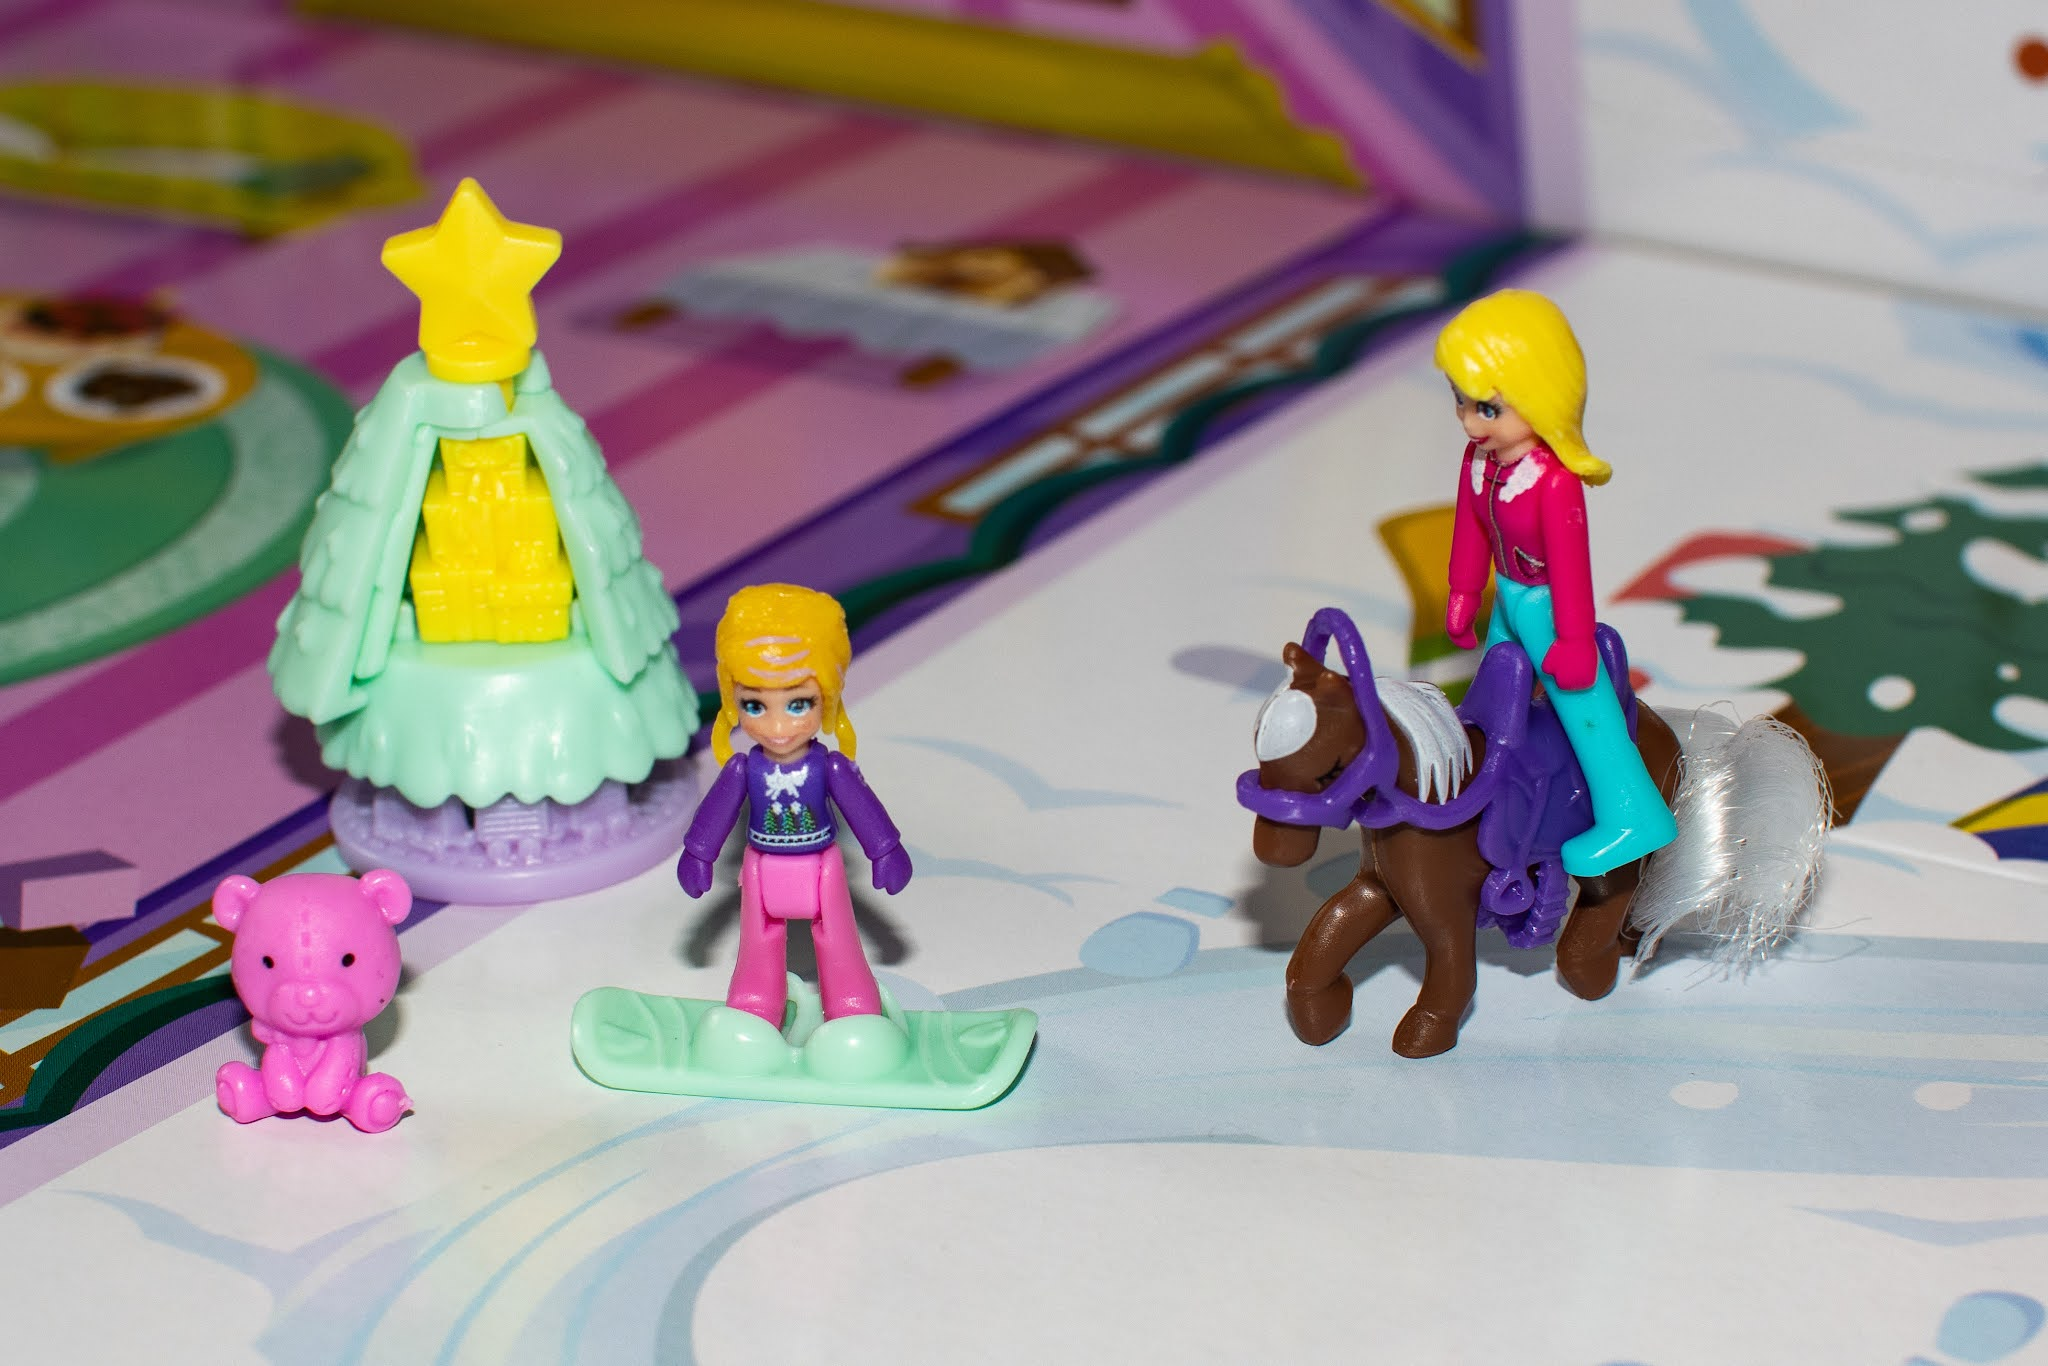 Some of the contents of the Polly Pocket Advent Calendar including a Christmas tree, a teddy and doll in ski's and a doll on a pony